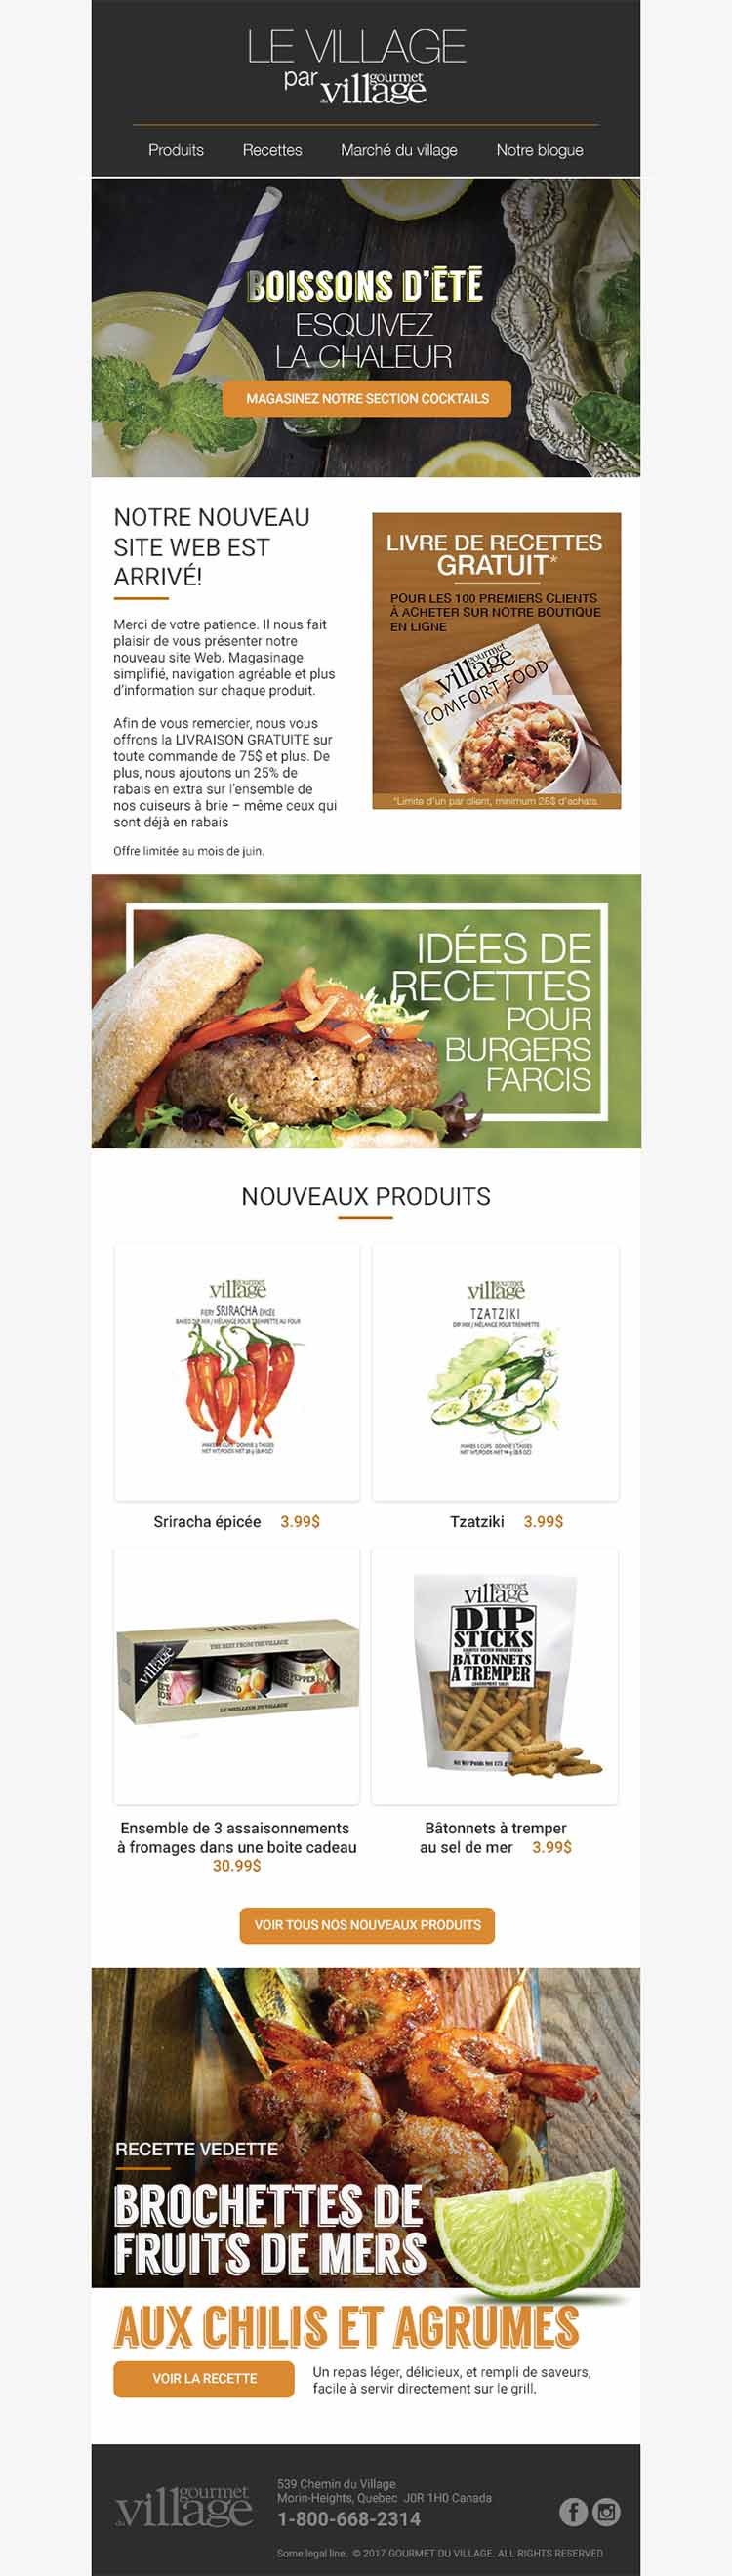 Site web e-commerce Gourmet du Village | Réalisations | King Communications